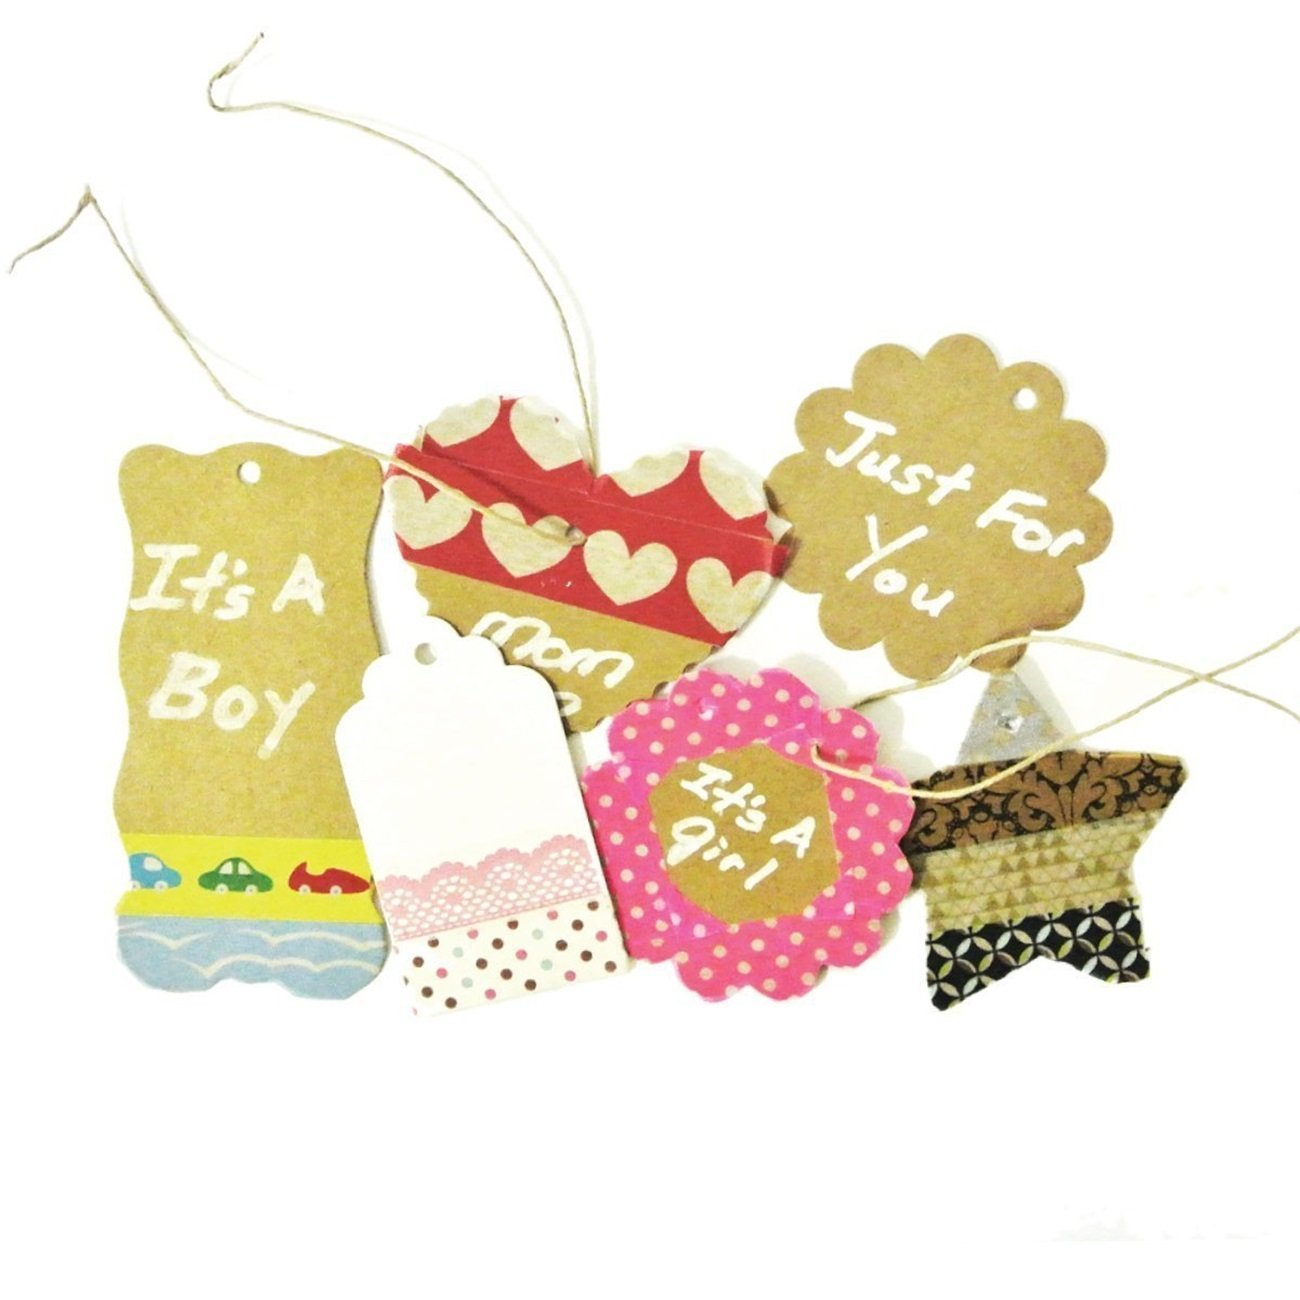 Wrapables 10 Gift Tags/Kraft Scalloped Edge Hang Tags with Free Cut Strings, Small, White